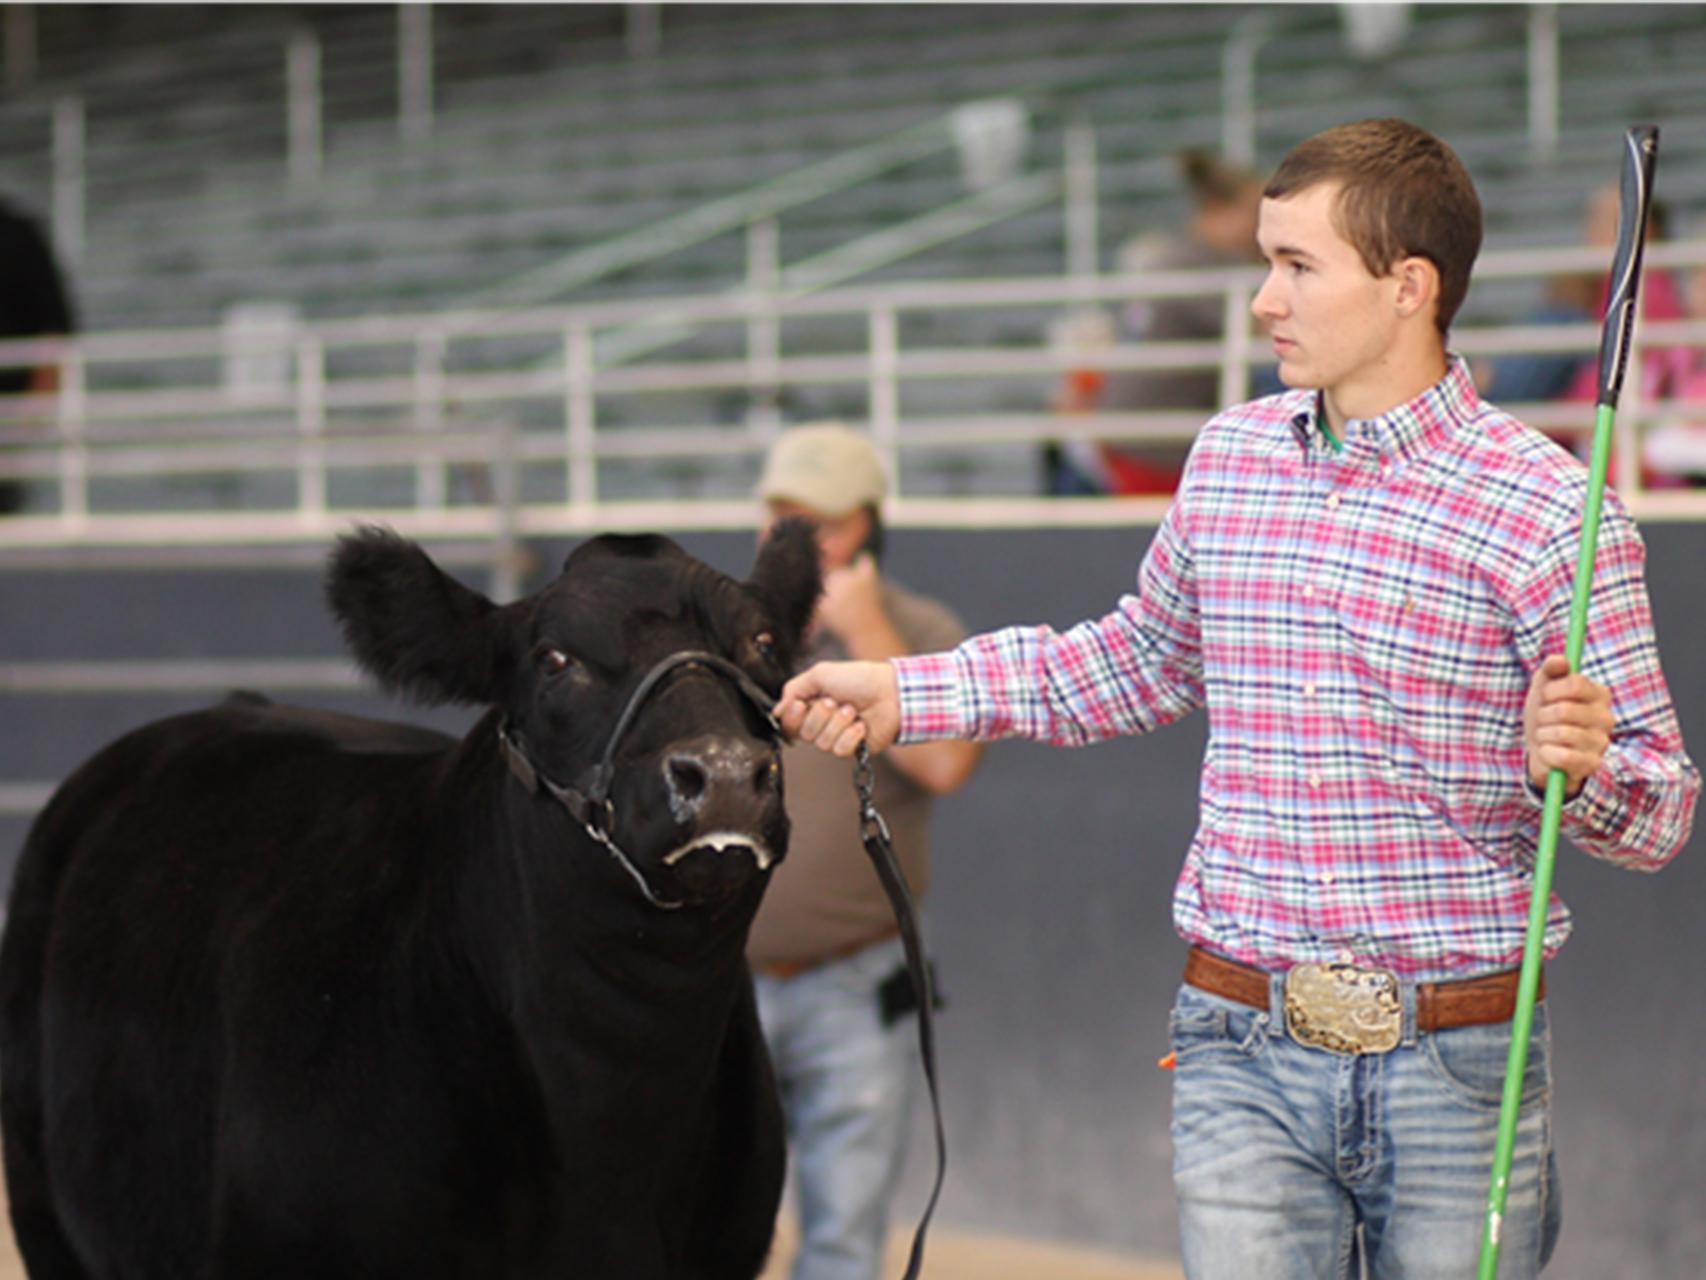 Jones County 4-H member Rustin Anderson, 17, exhibits his grand champion Brangus heifer on Oct. 22, 2016 at the State Fair in Jackson, Mississippi. (Submitted photo by Brianna Stroud)